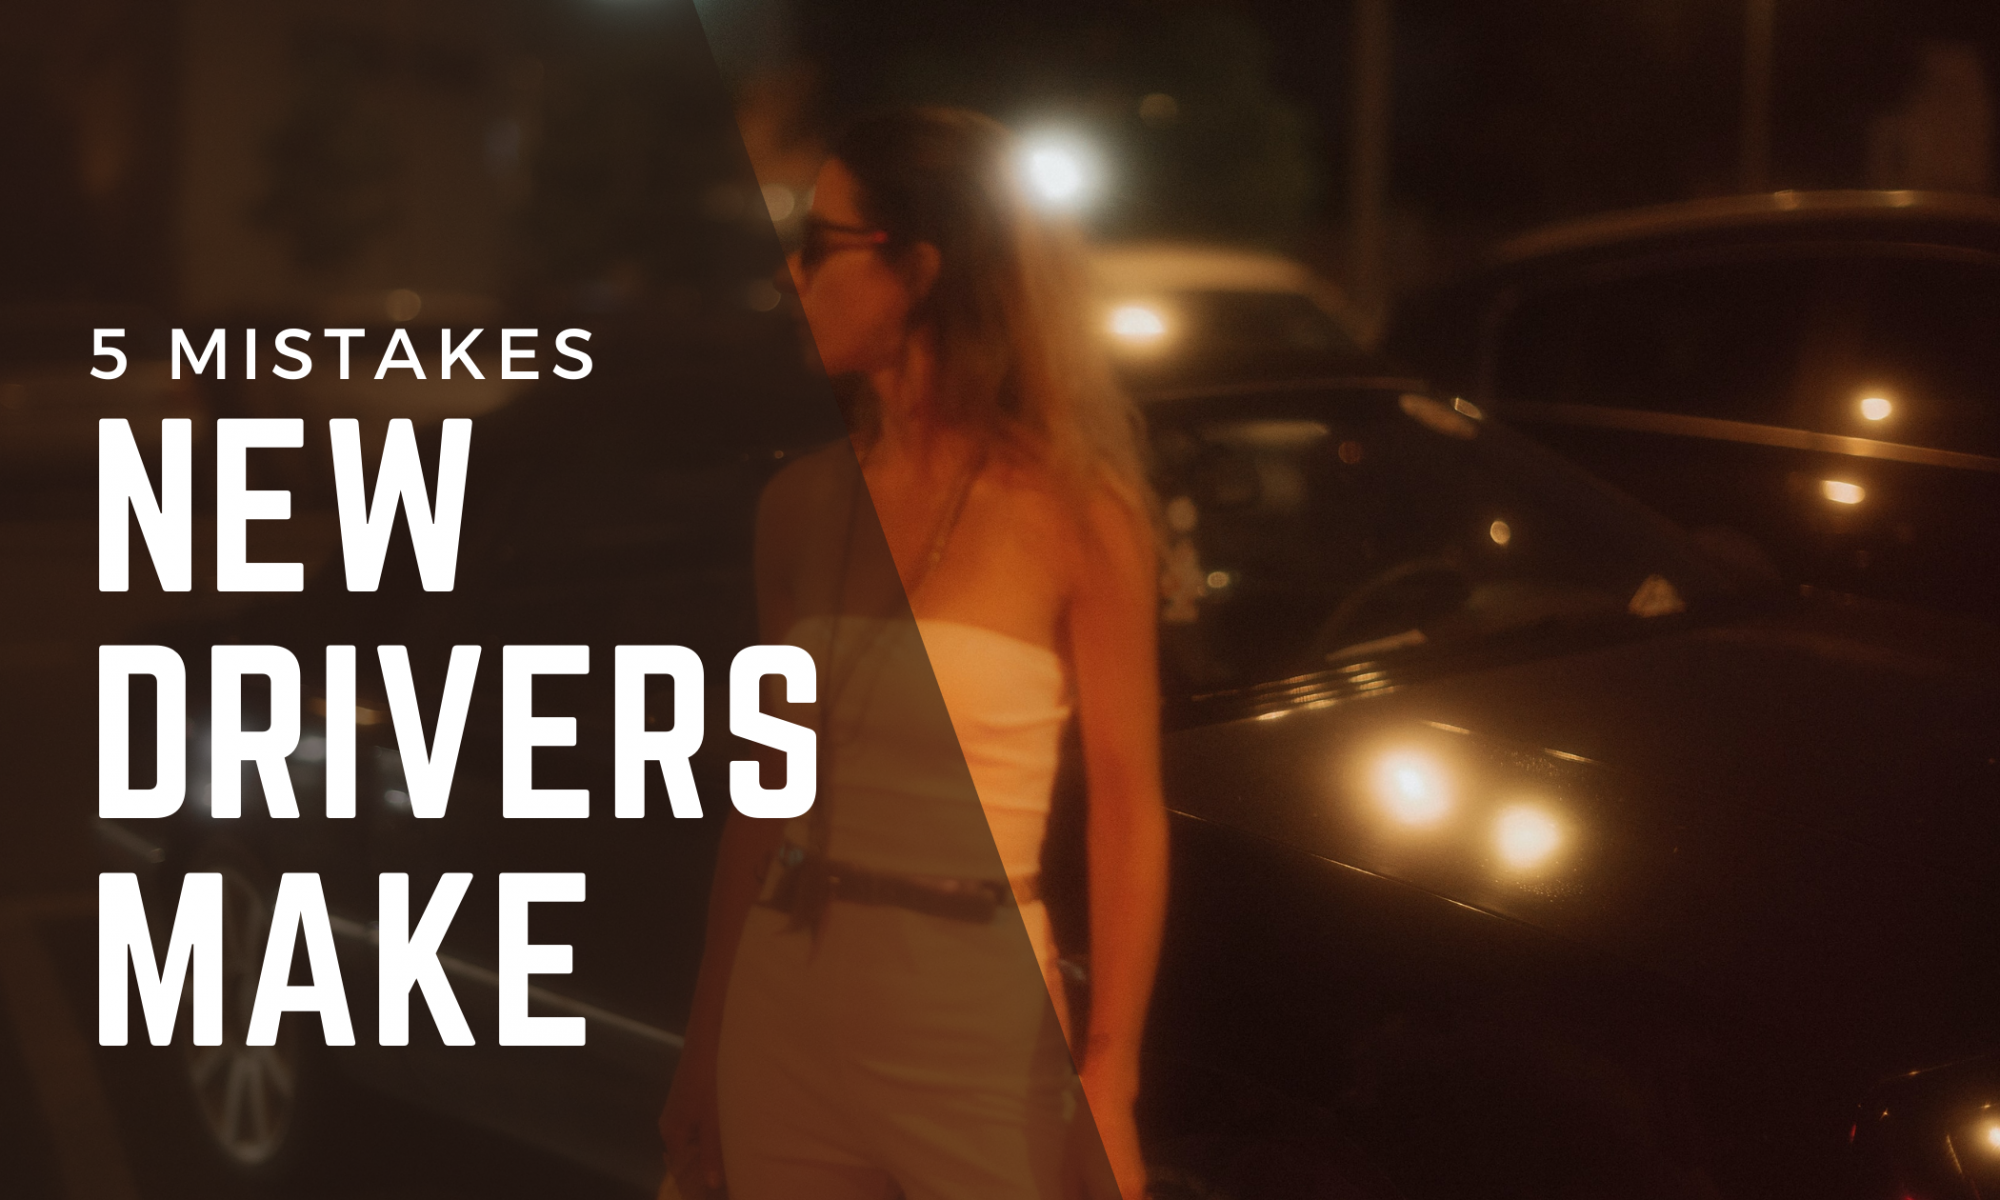 5 Mistakes That New Drivers Make